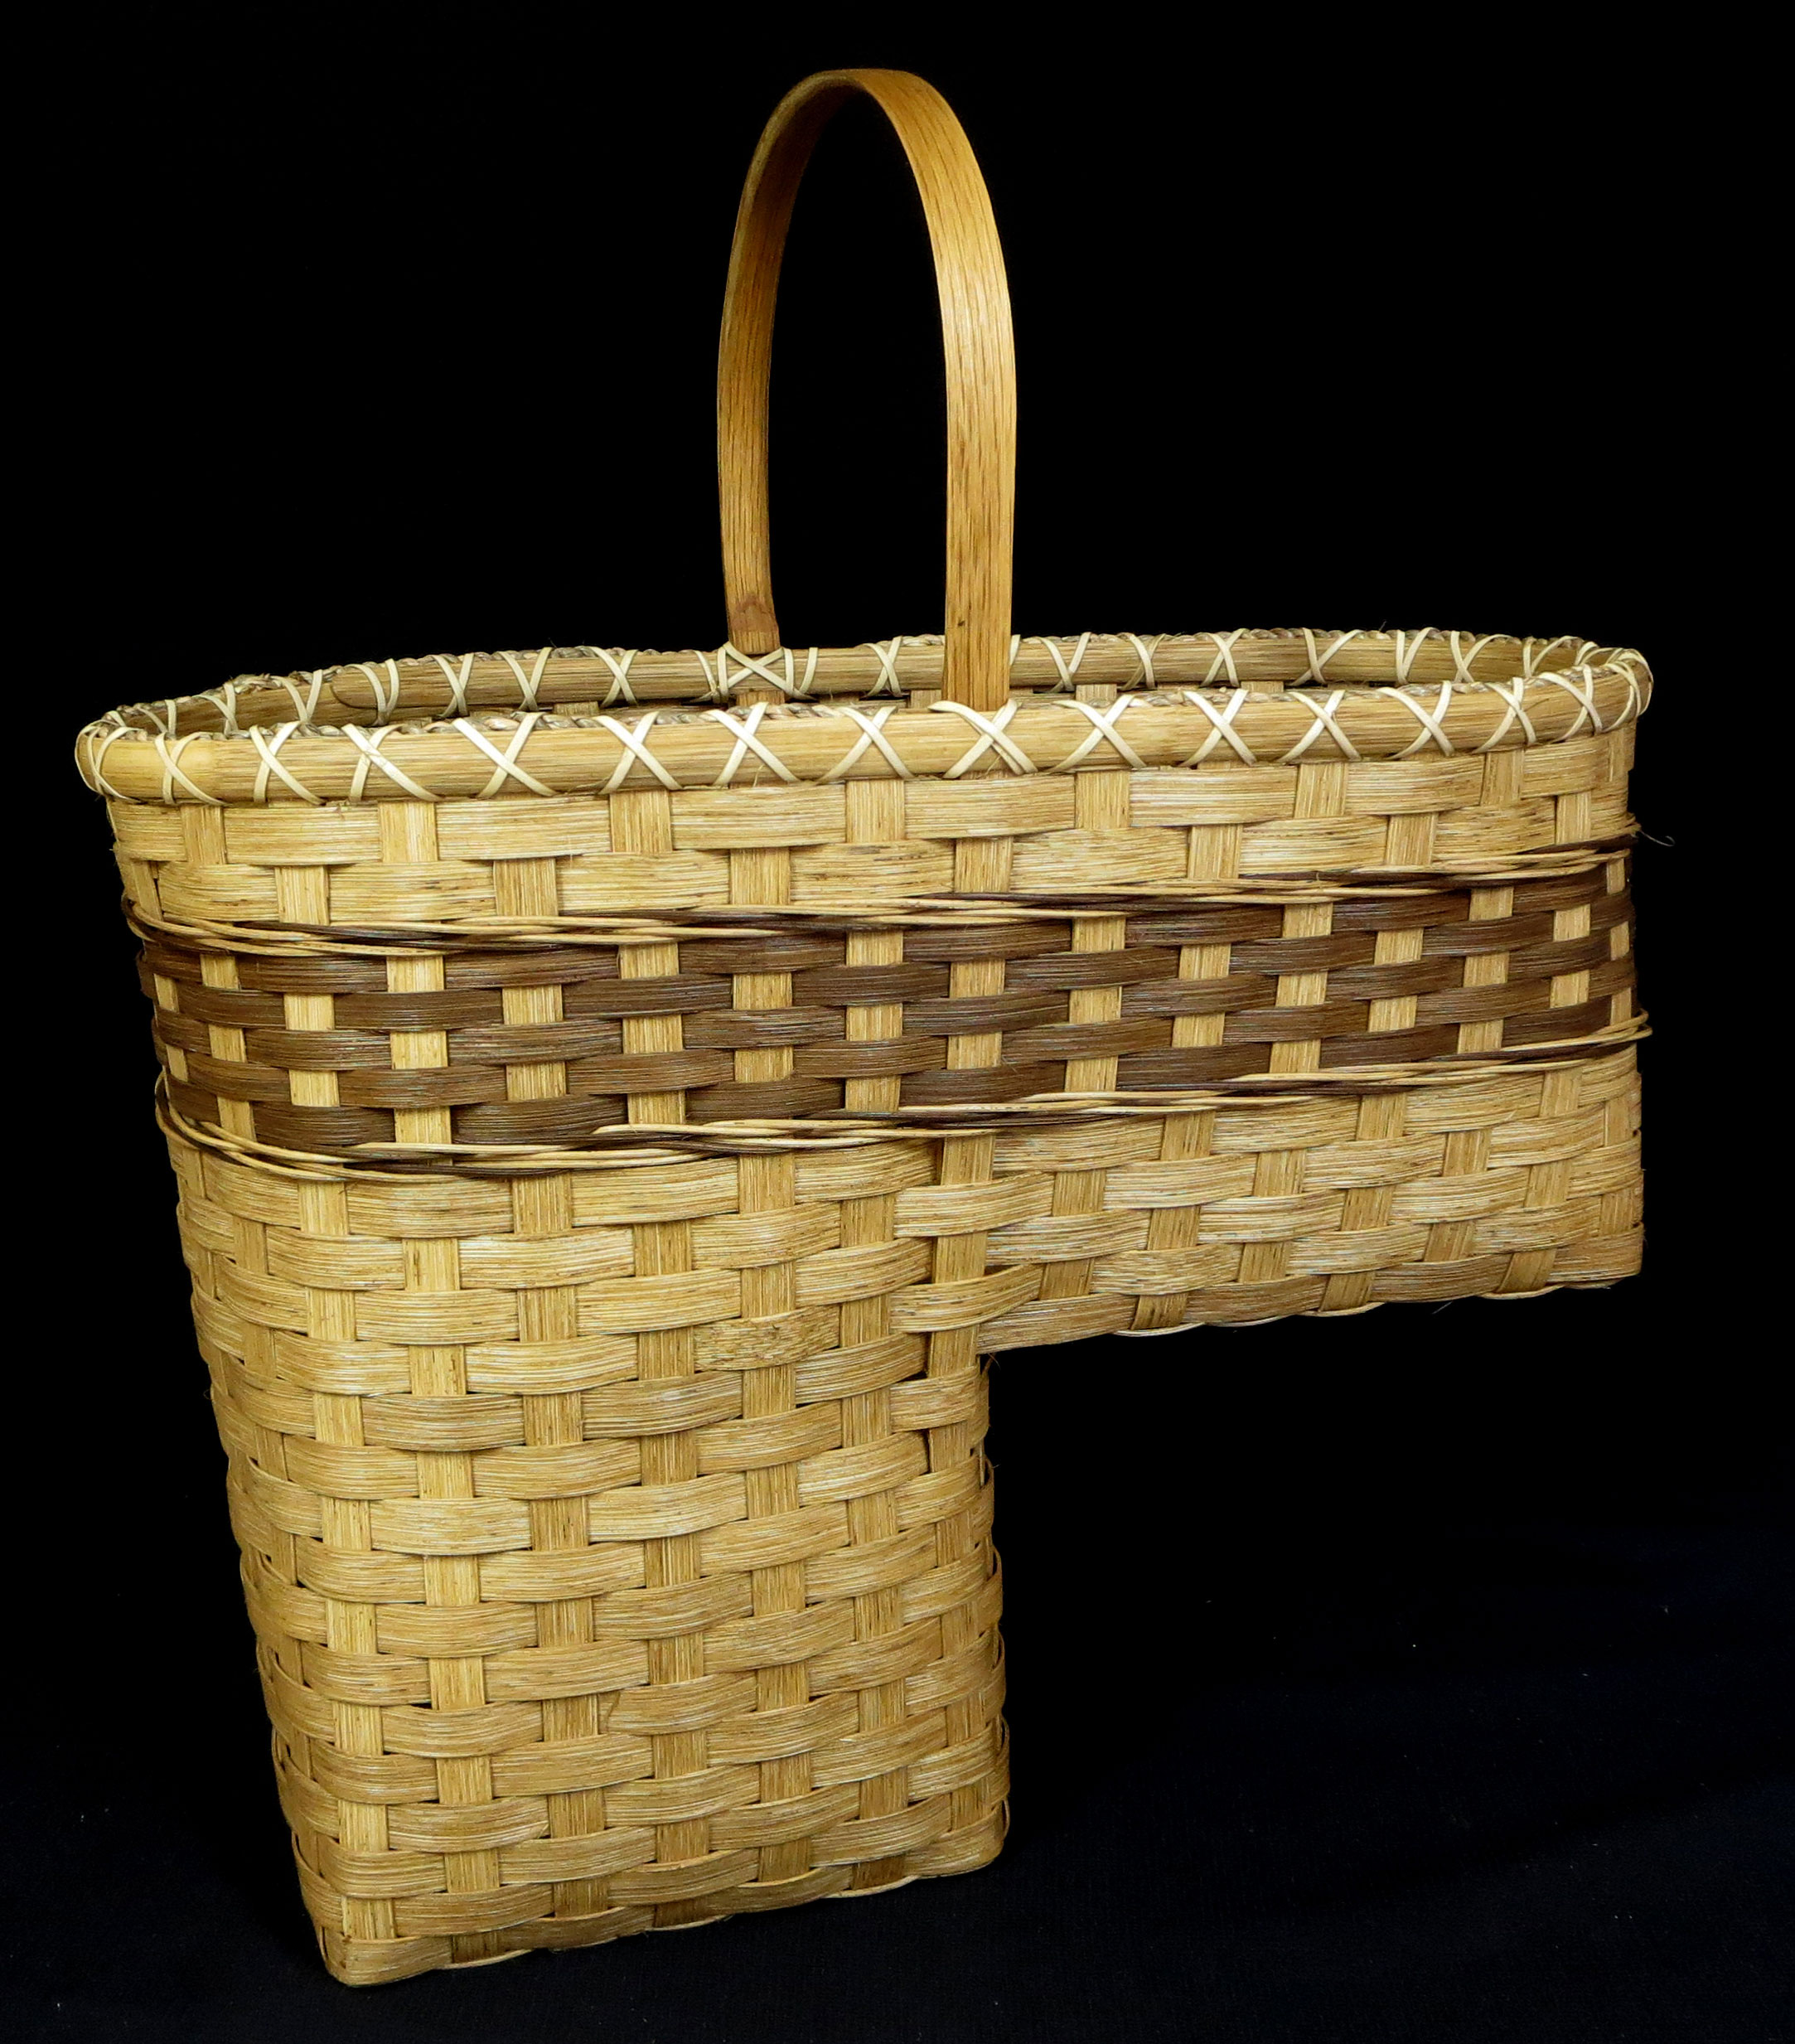 Countryside Basketry Decorative